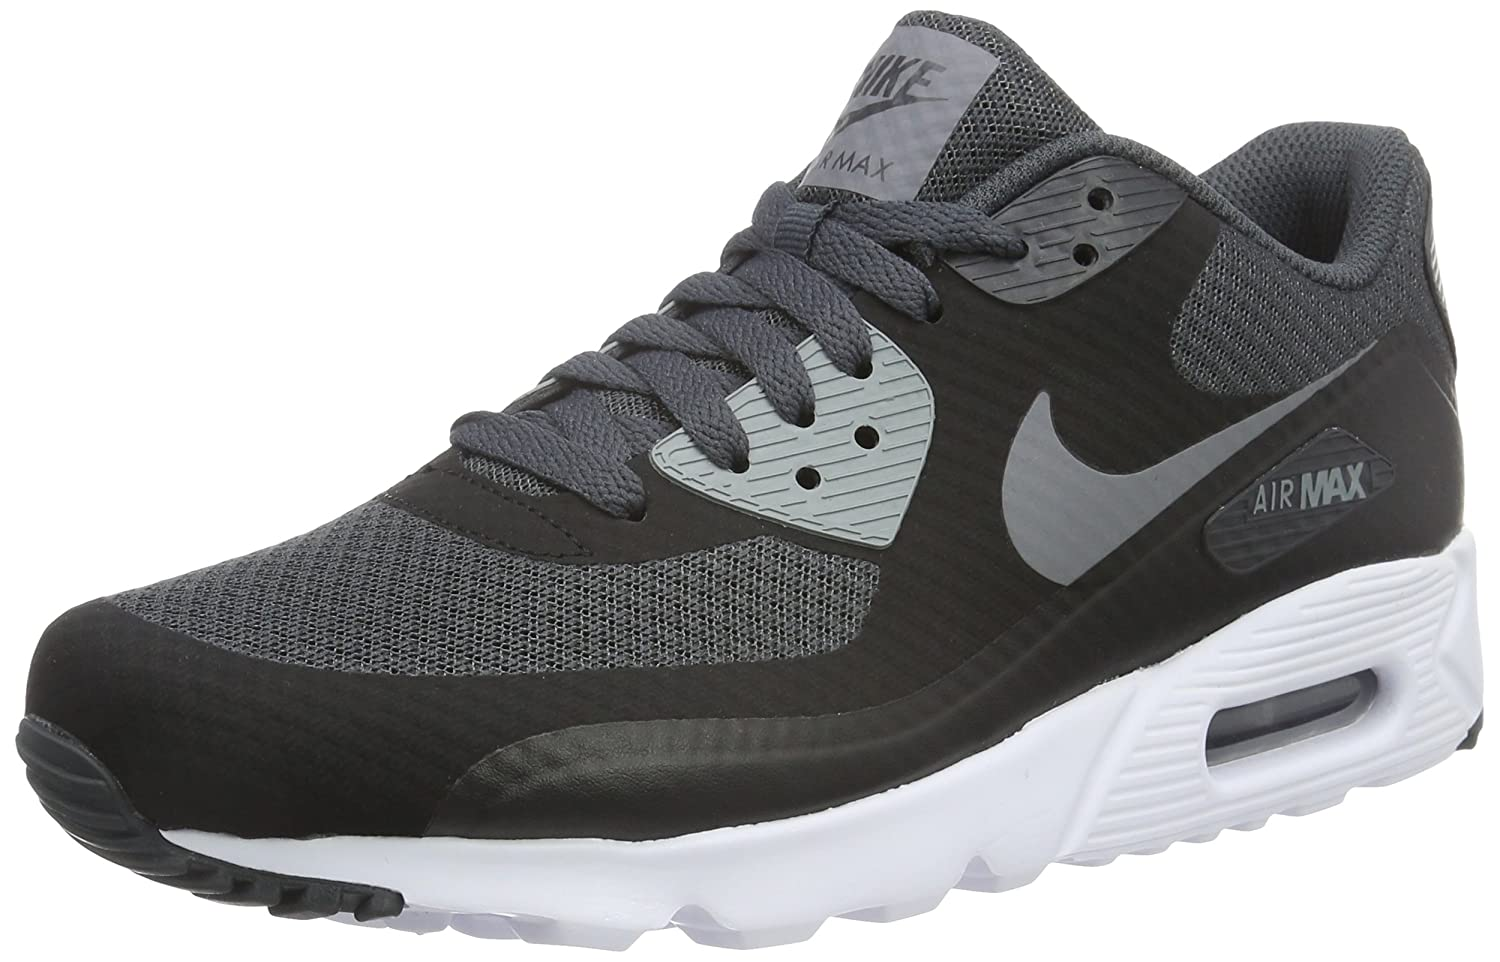 quite nice 65b78 4f4a2 Amazon.com | NIKE Air Max 90 Ultra Essential Black/Cool  Grey-Anthracite-White (8 D(M) US, Black/Cool Grey-Anthracite-White) | Road  Running